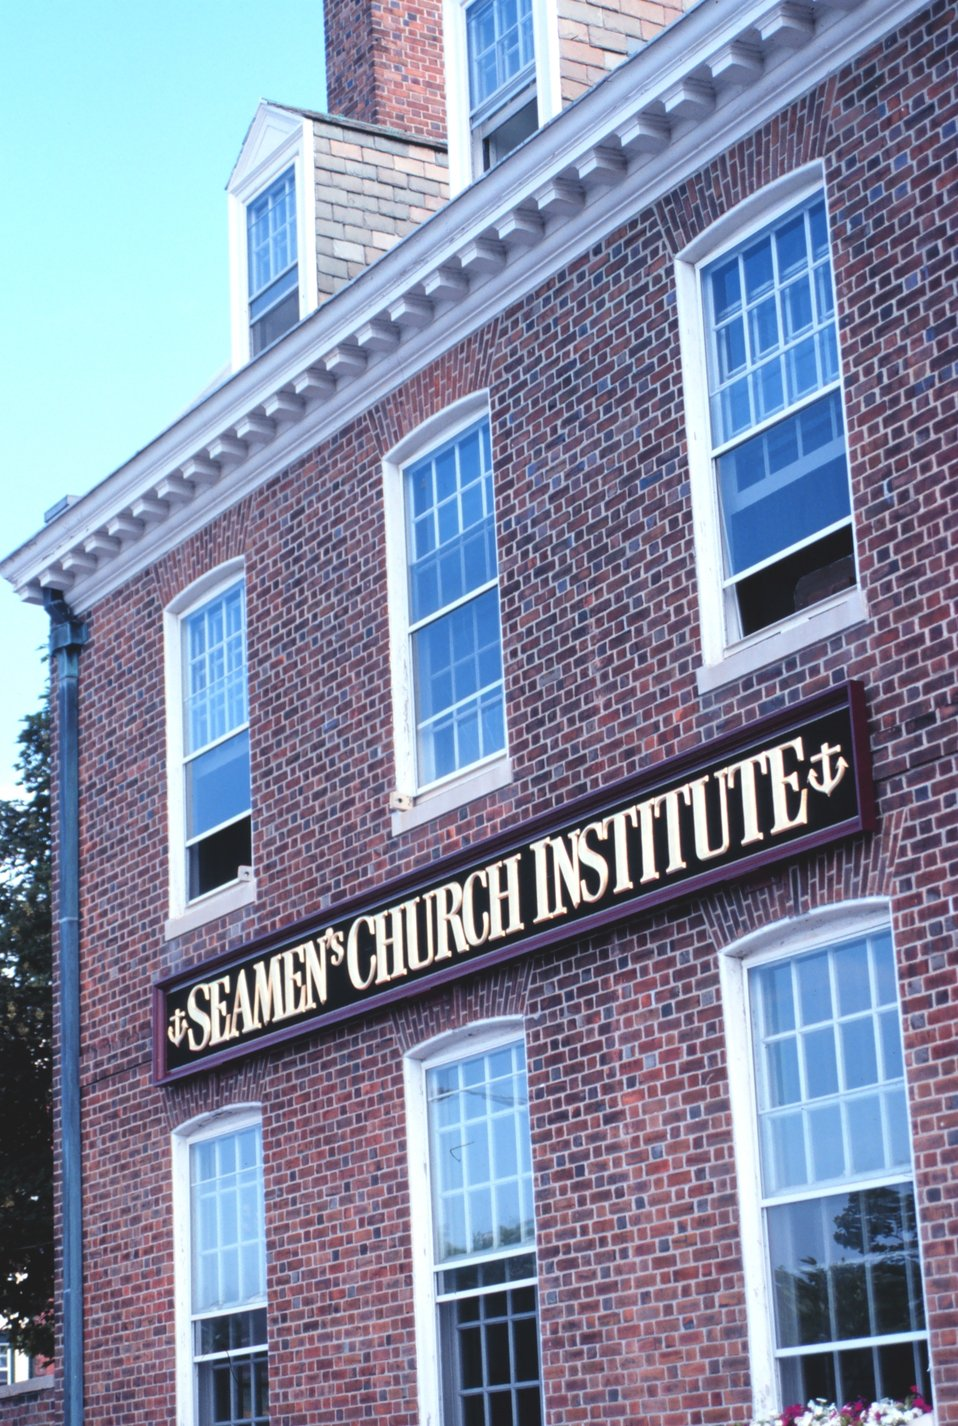 The Seamen's Church Institute